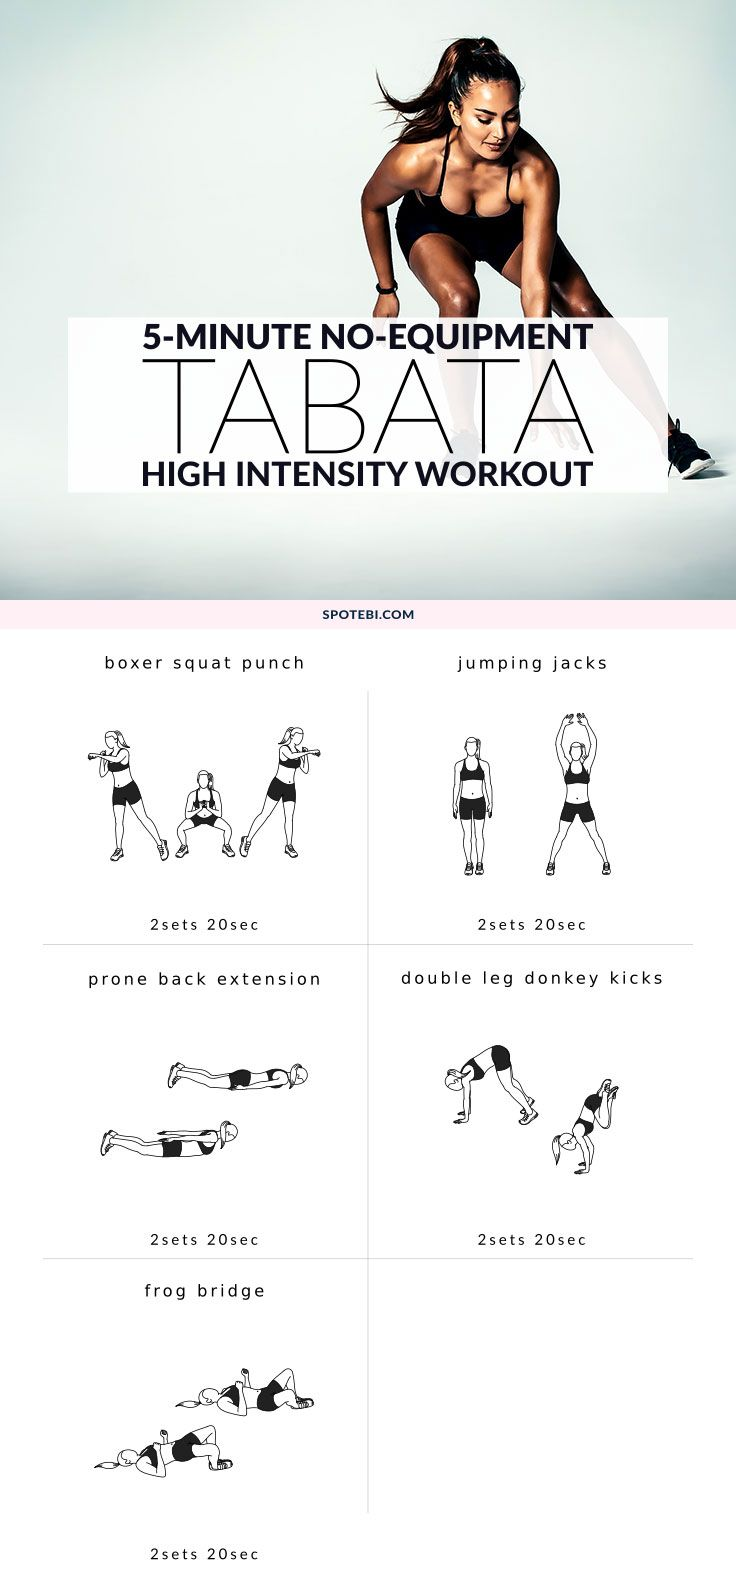 Timed Circuit Workout Music Workouts Timers For Tabata Hiit And Training Are Included No Equipment With Timer Playlist